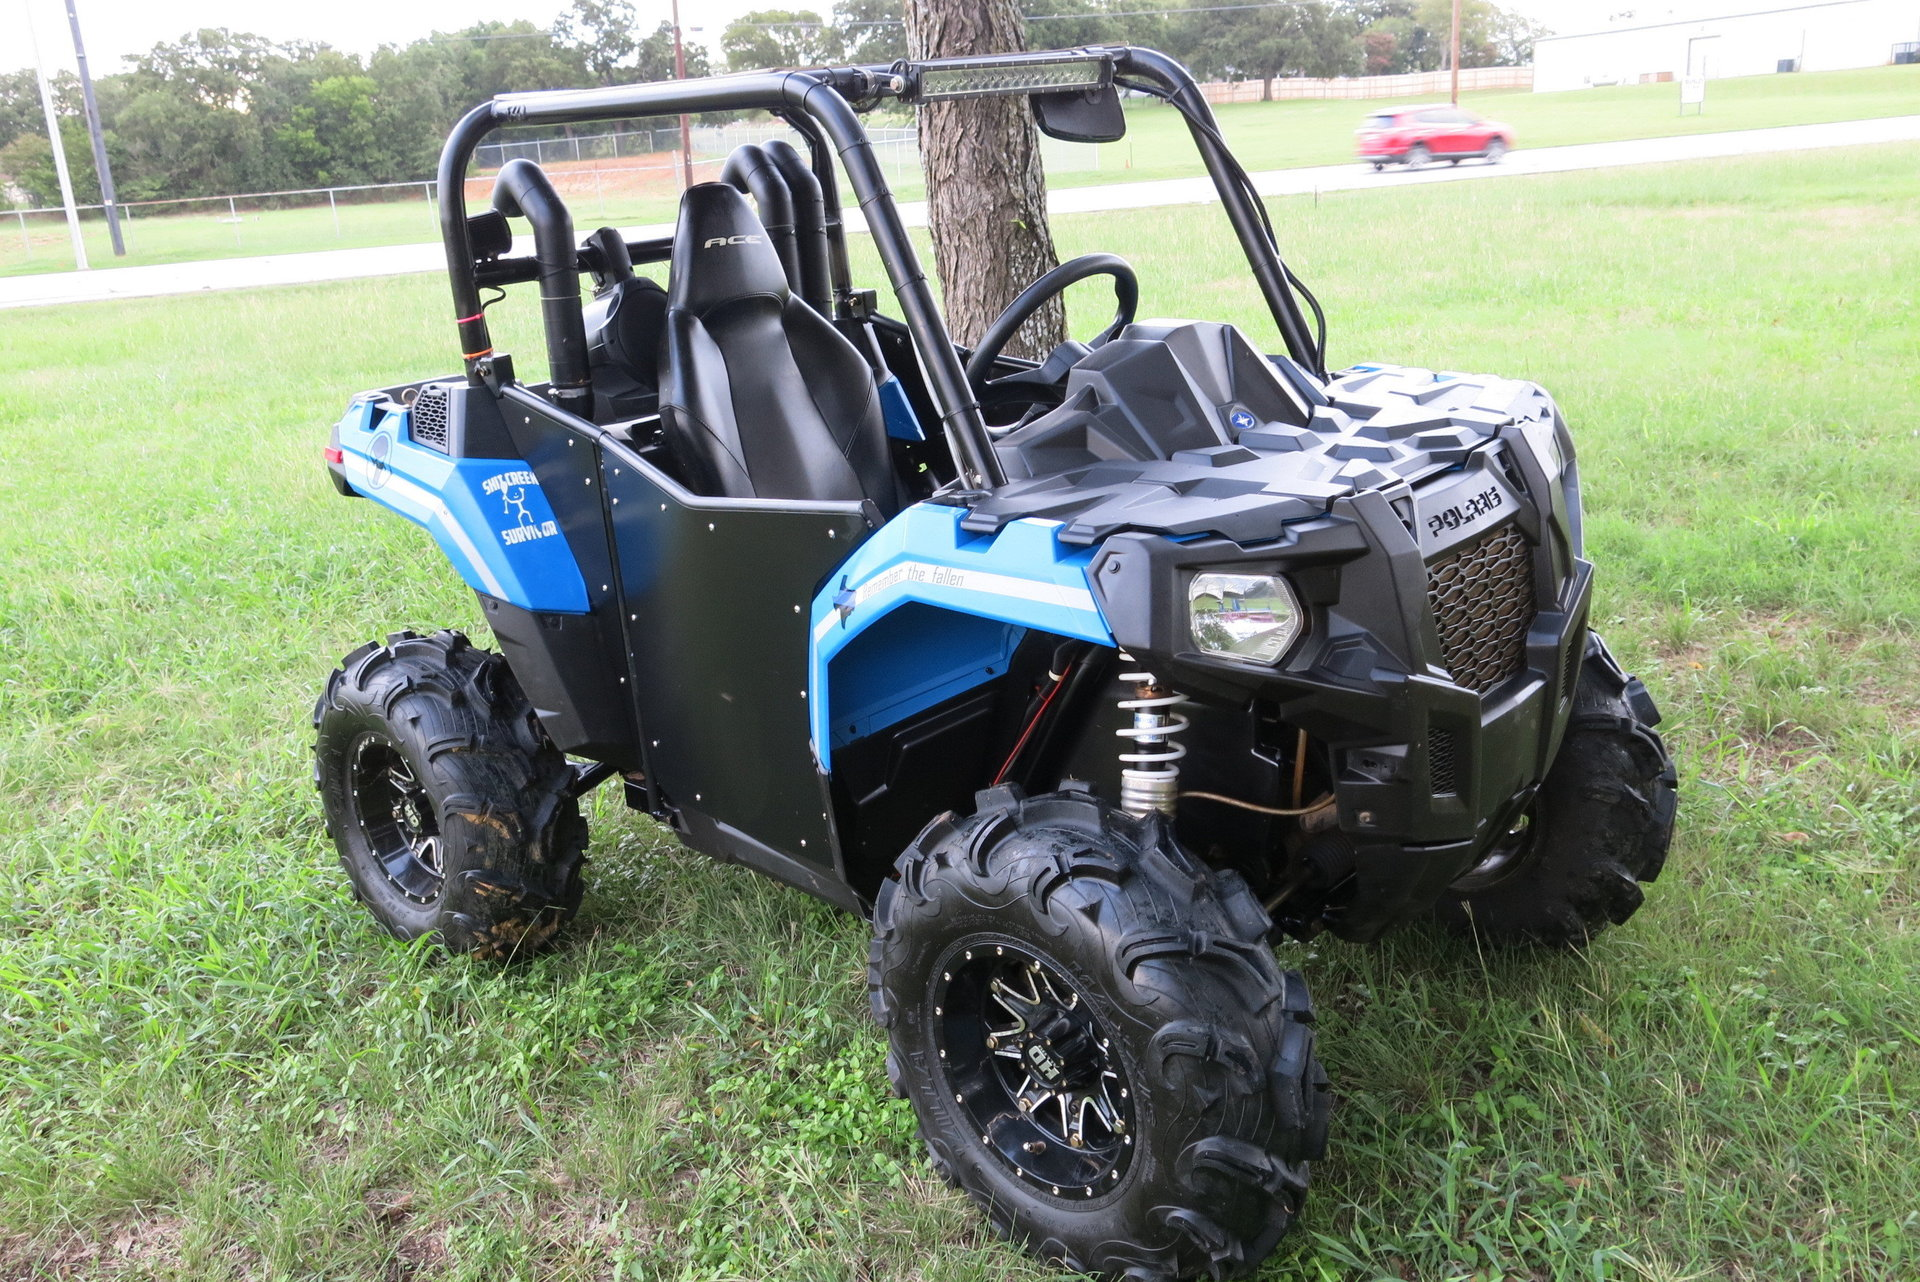 2015 polaris rzr ace for sale 100954 mcg. Black Bedroom Furniture Sets. Home Design Ideas